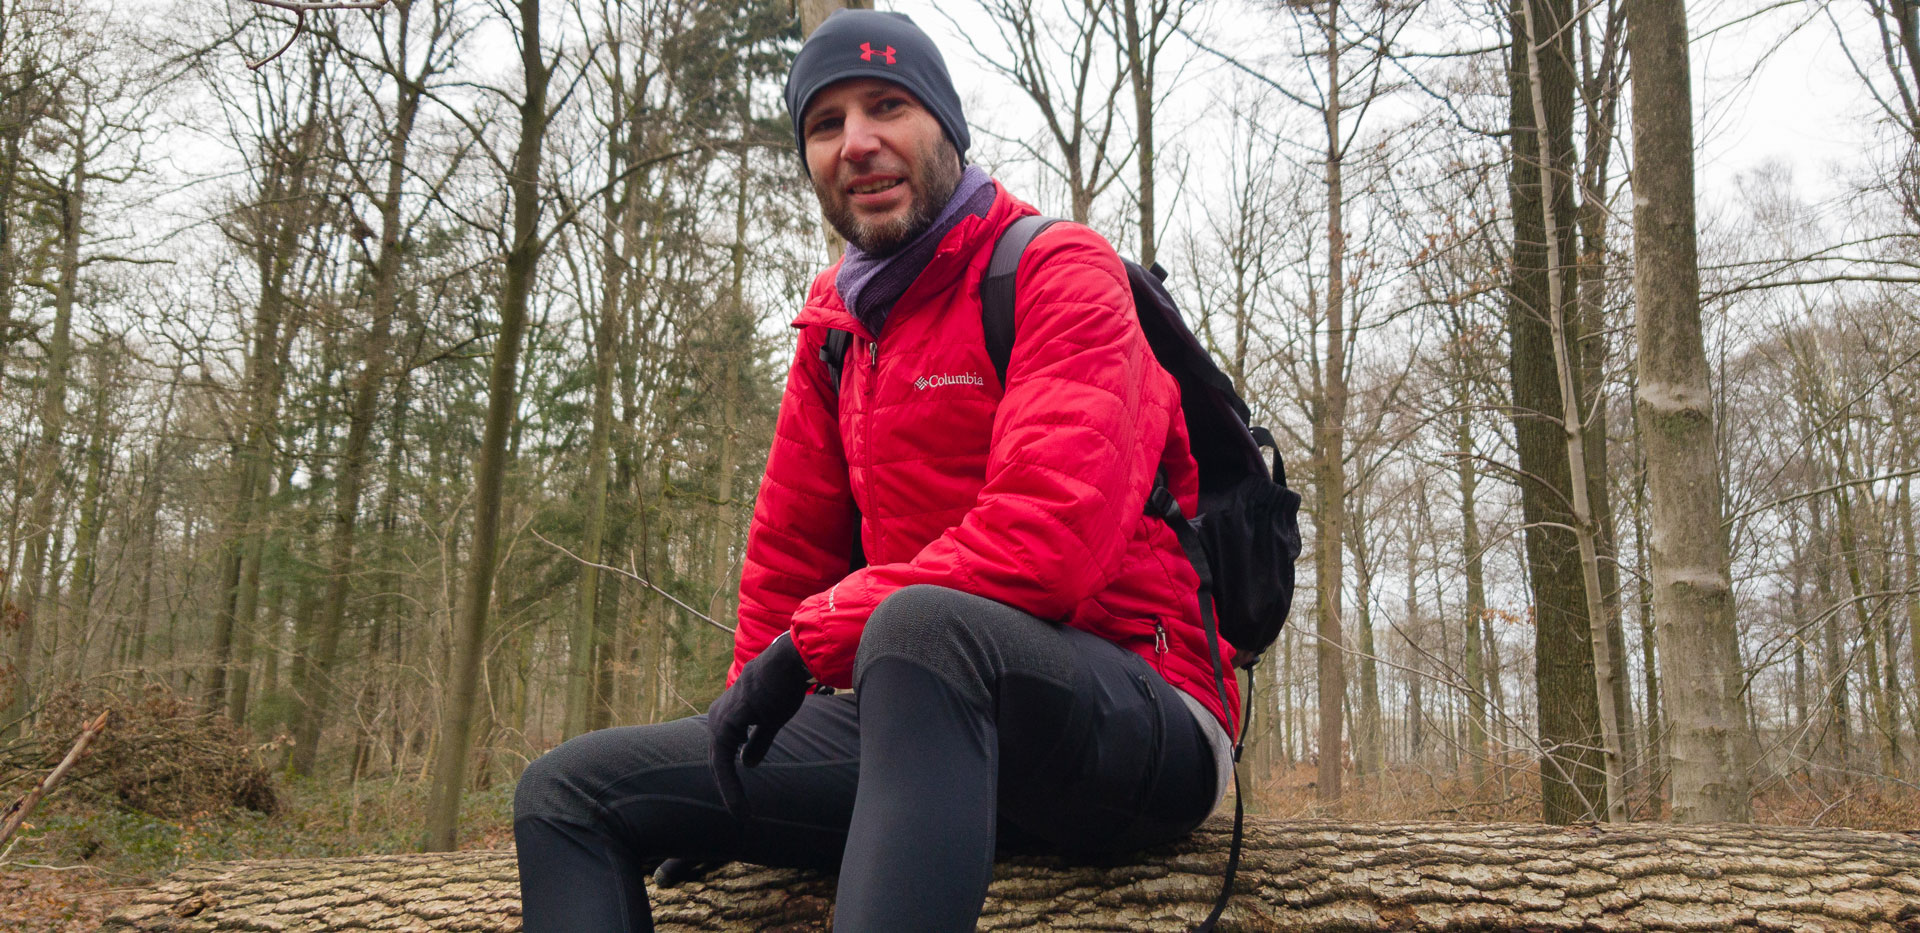 Kris wearing the Fjallraven Hiking tights with reinforced knees and rear